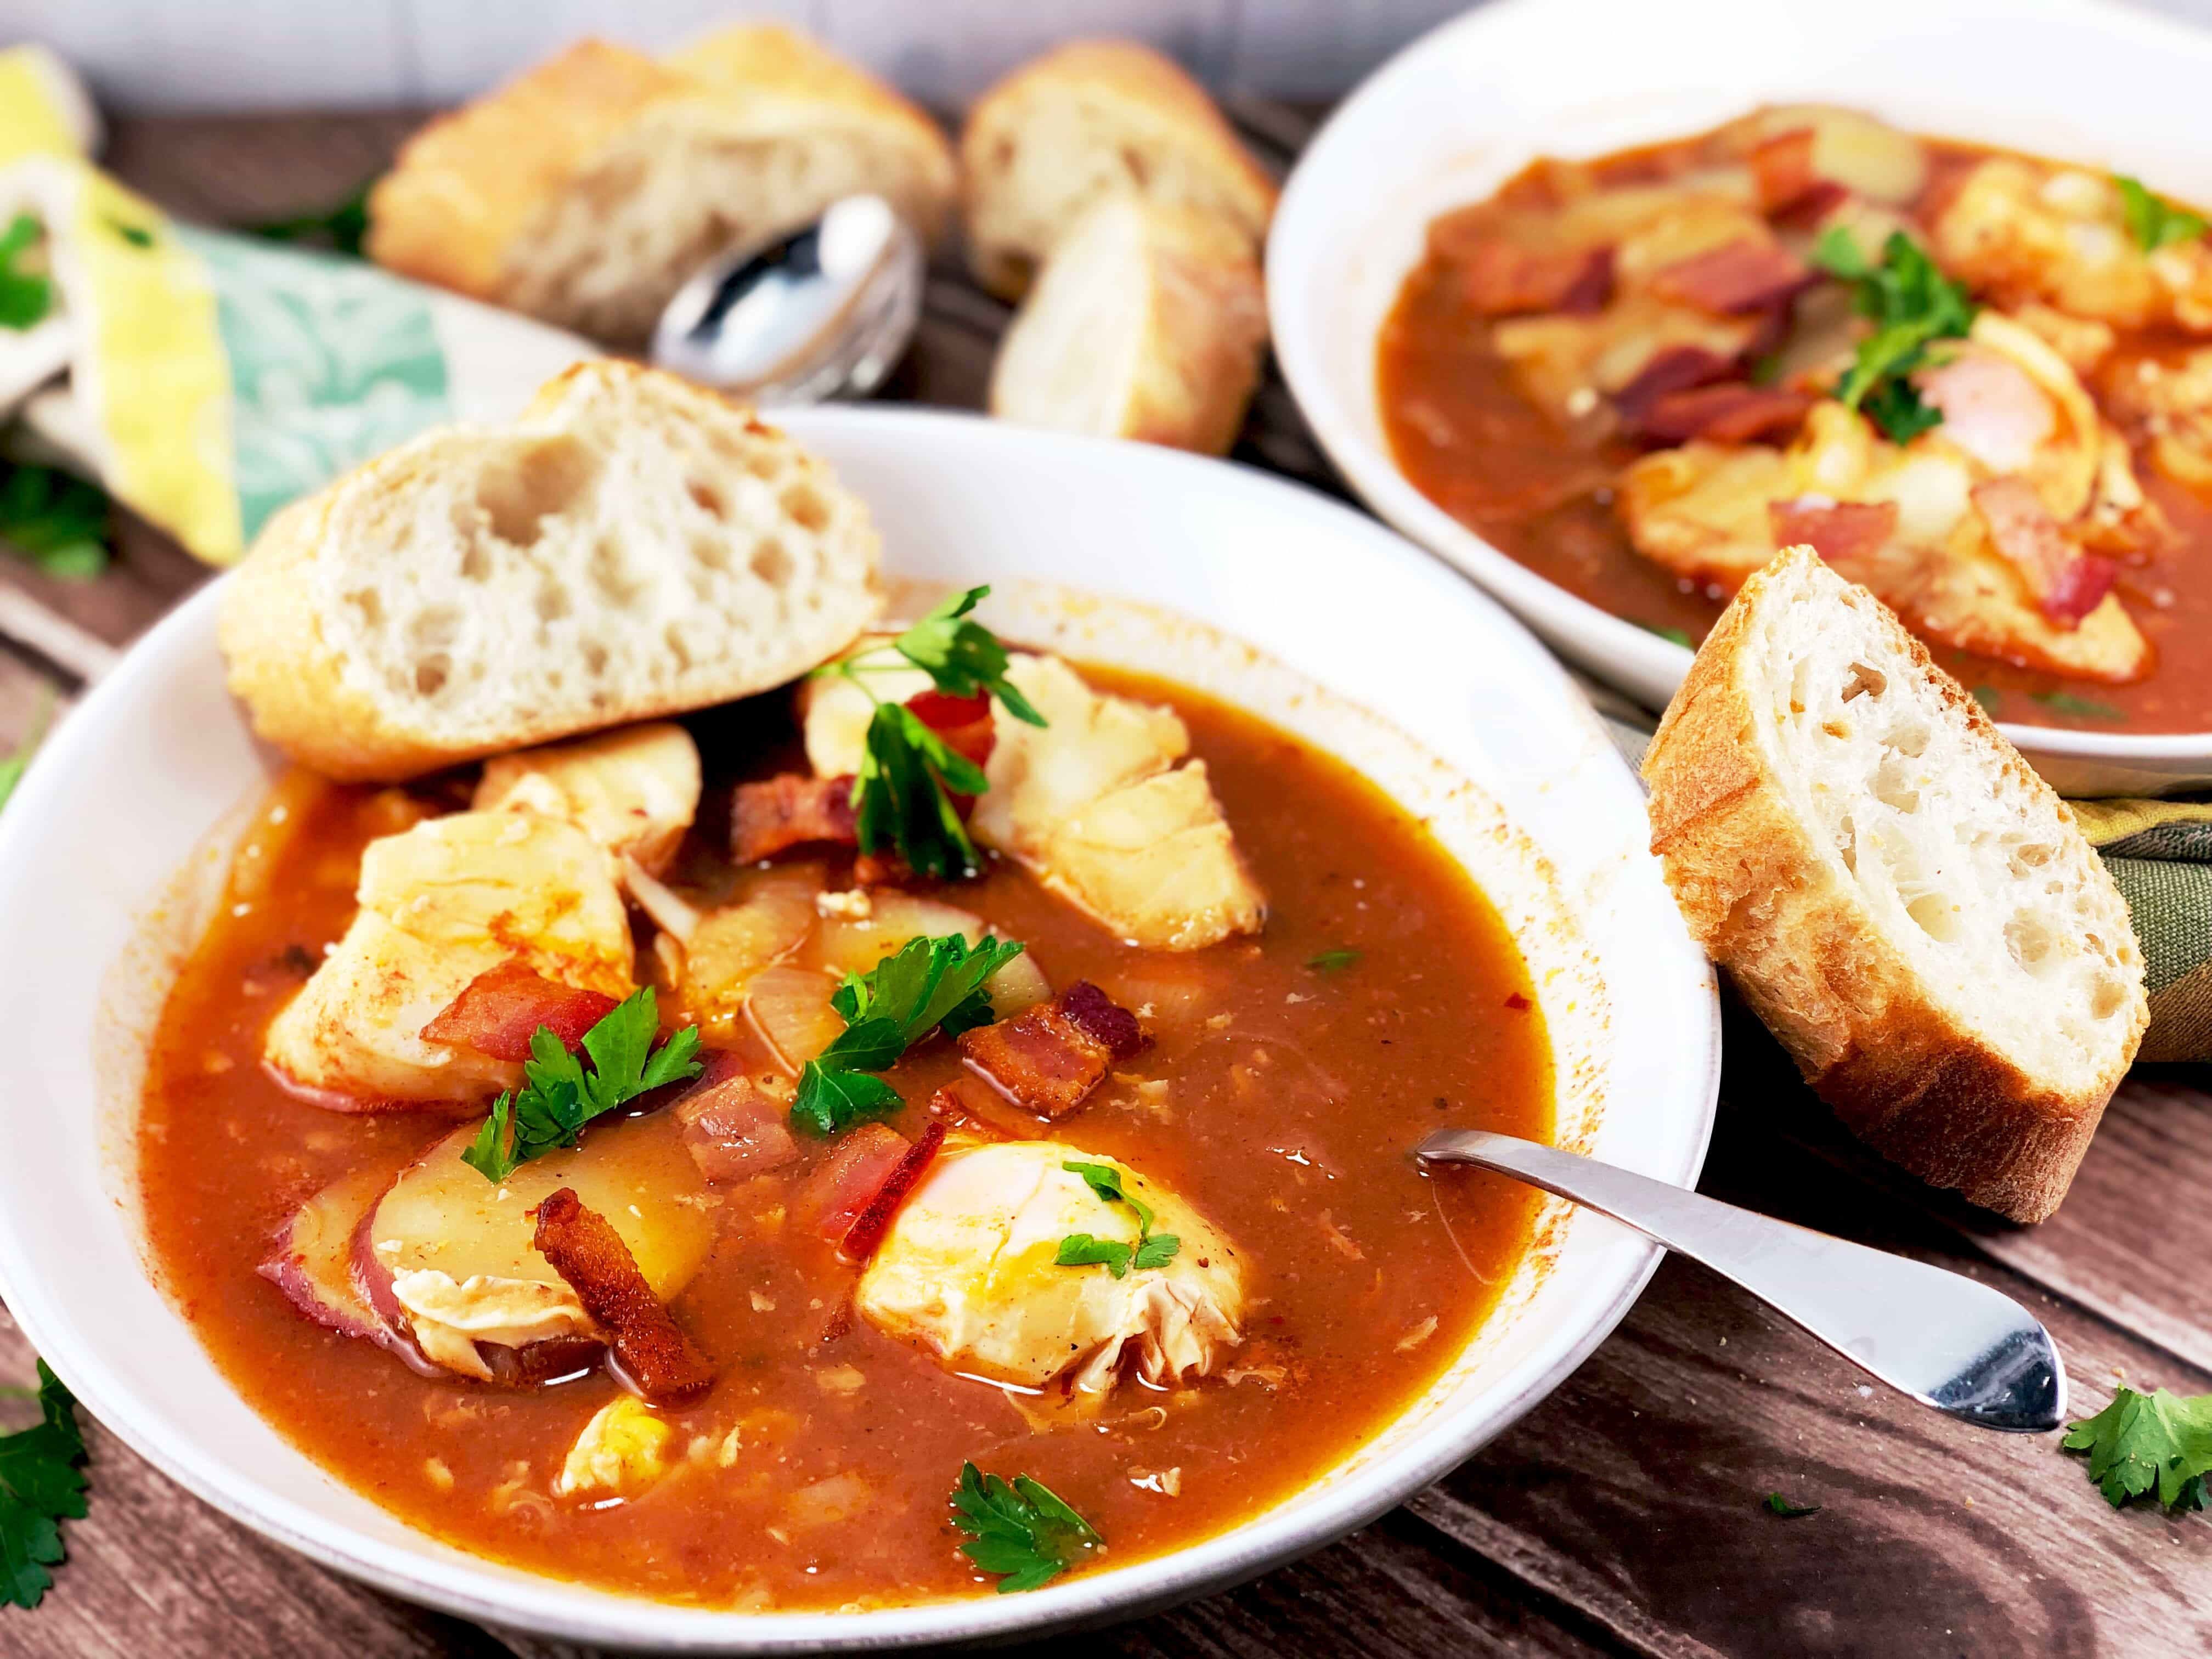 North Carolina Fish Stew with egg, whitefish and bacon